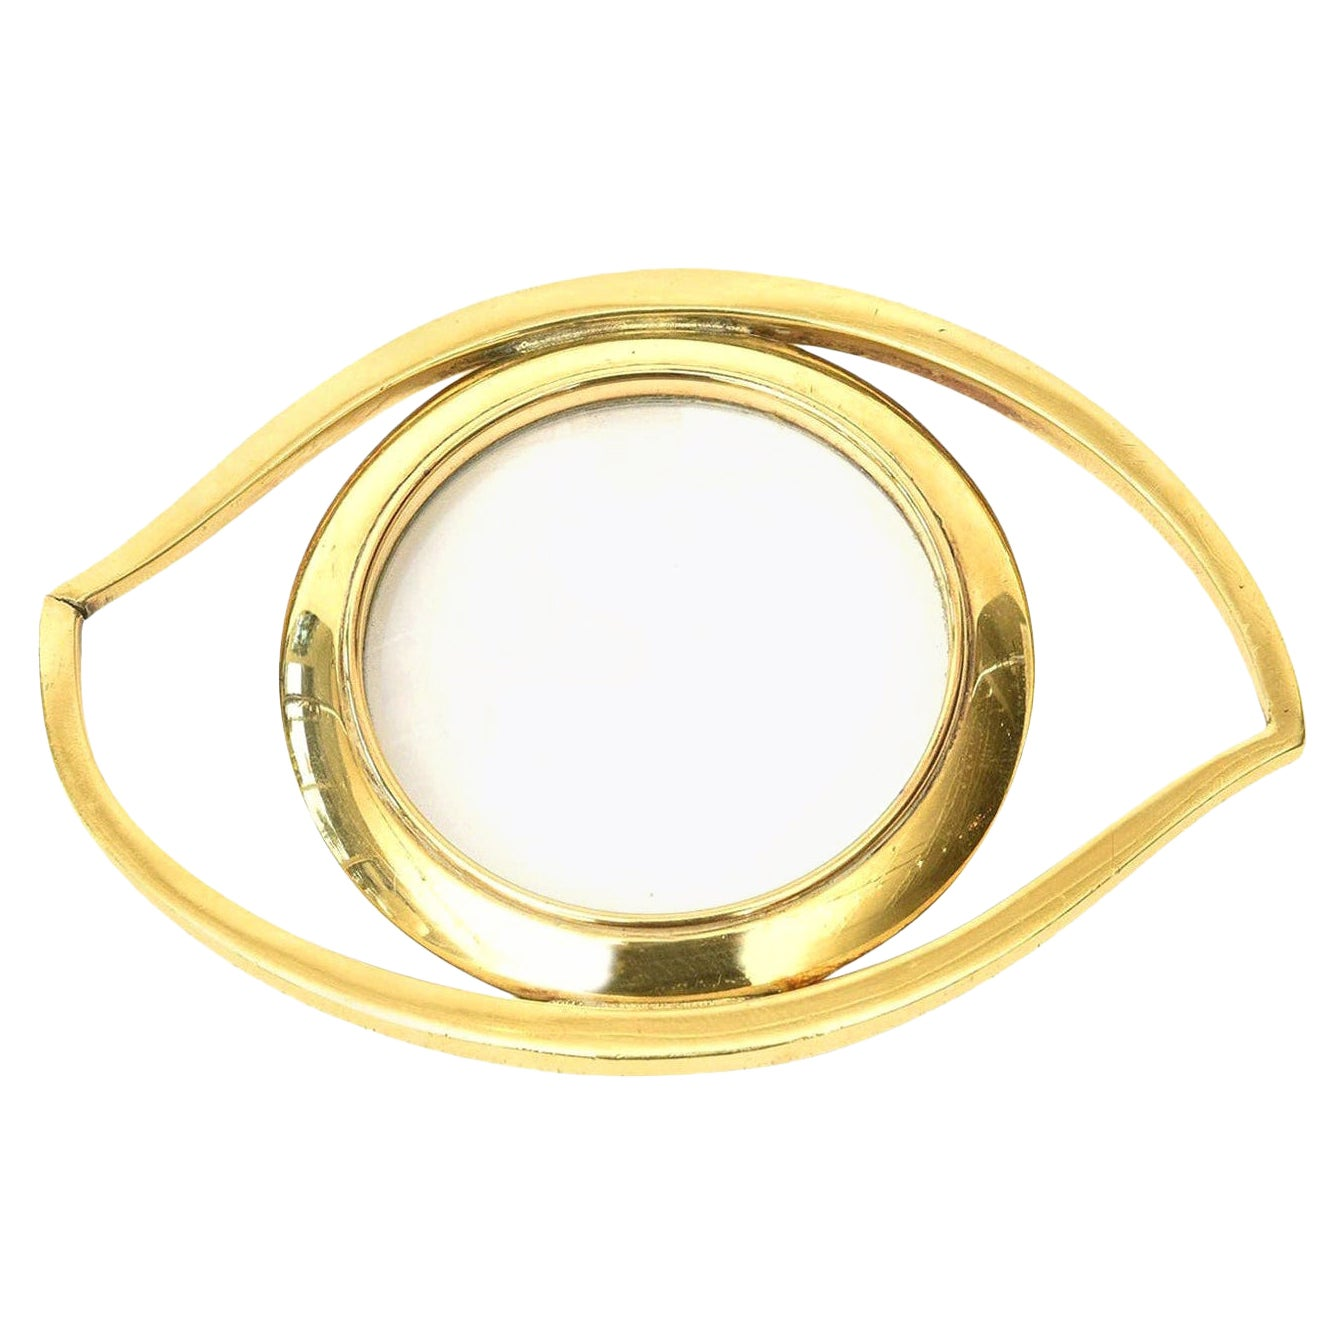 Hermès Eye of Cleopatra Magnifier Desk Accessory or Paperweight, Vintage